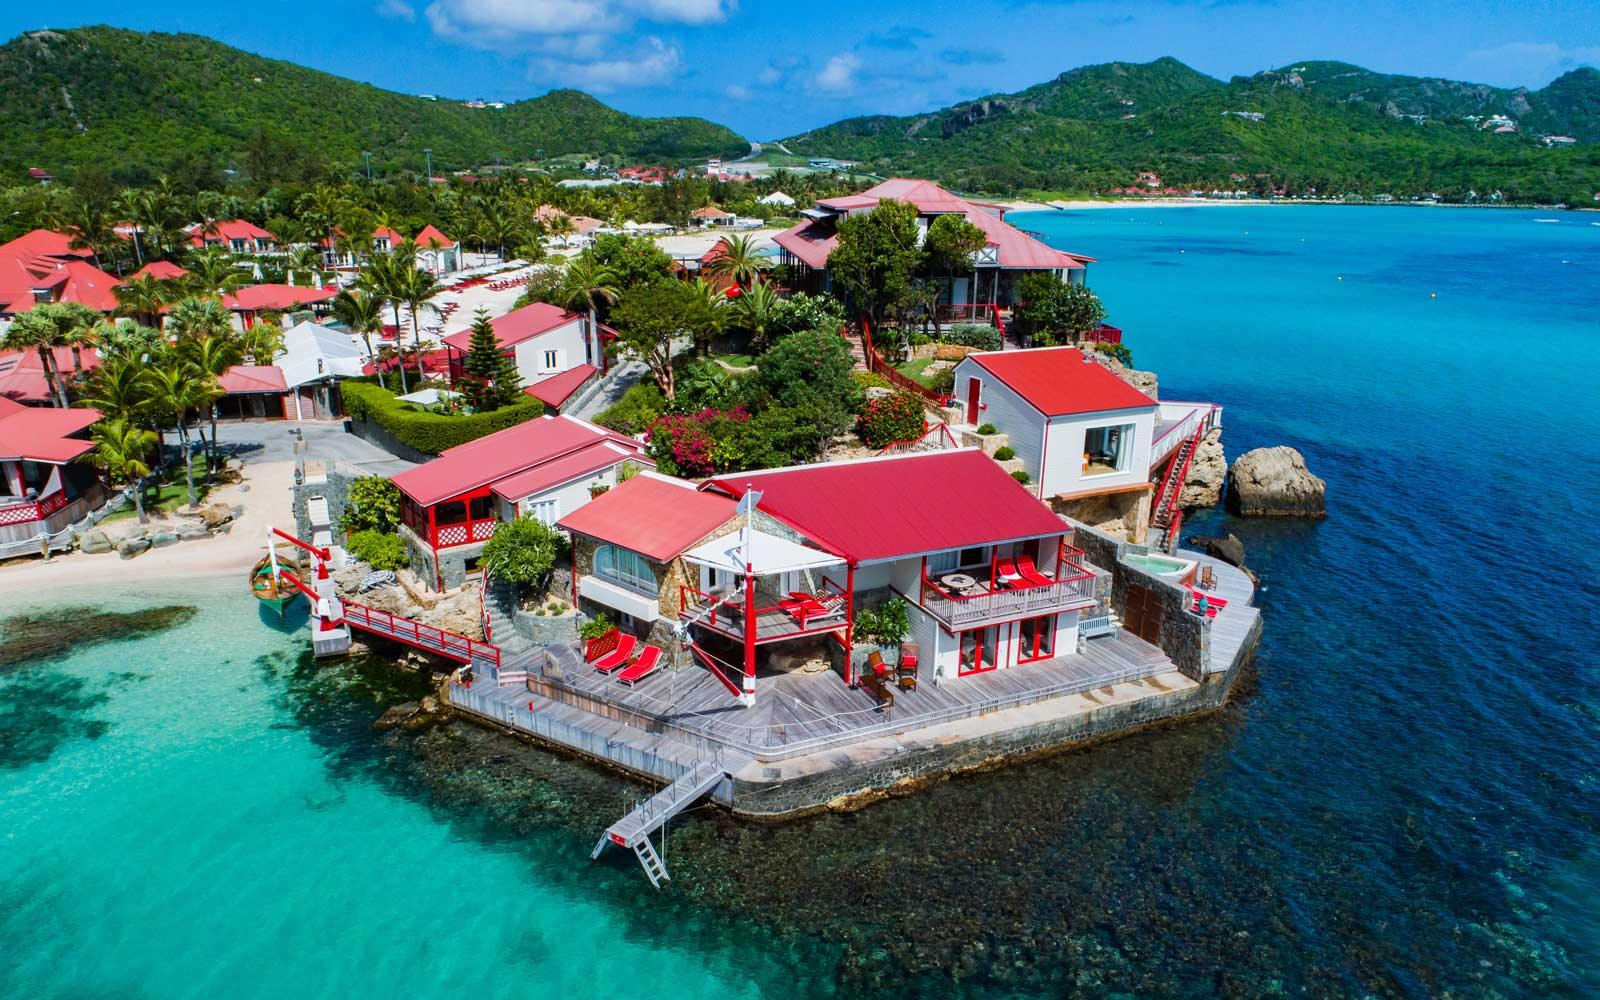 Aerial view of the Eden Rock resort in St Barth's